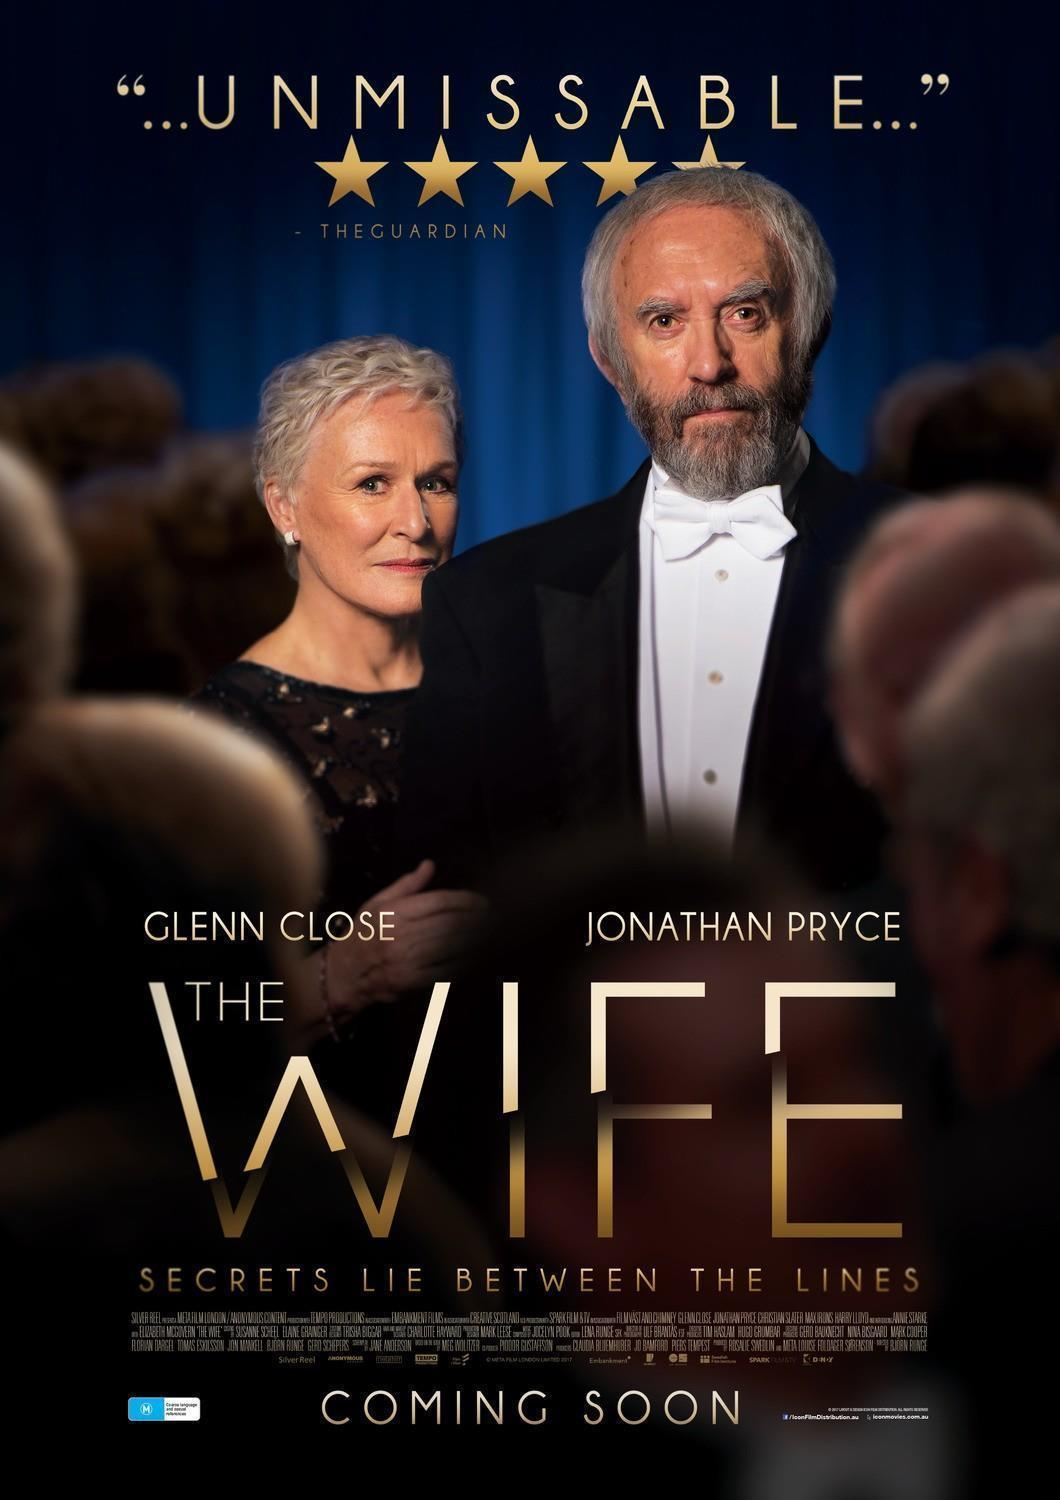 telecharger The Wife 2017 MULTi 1080p BluRay x264